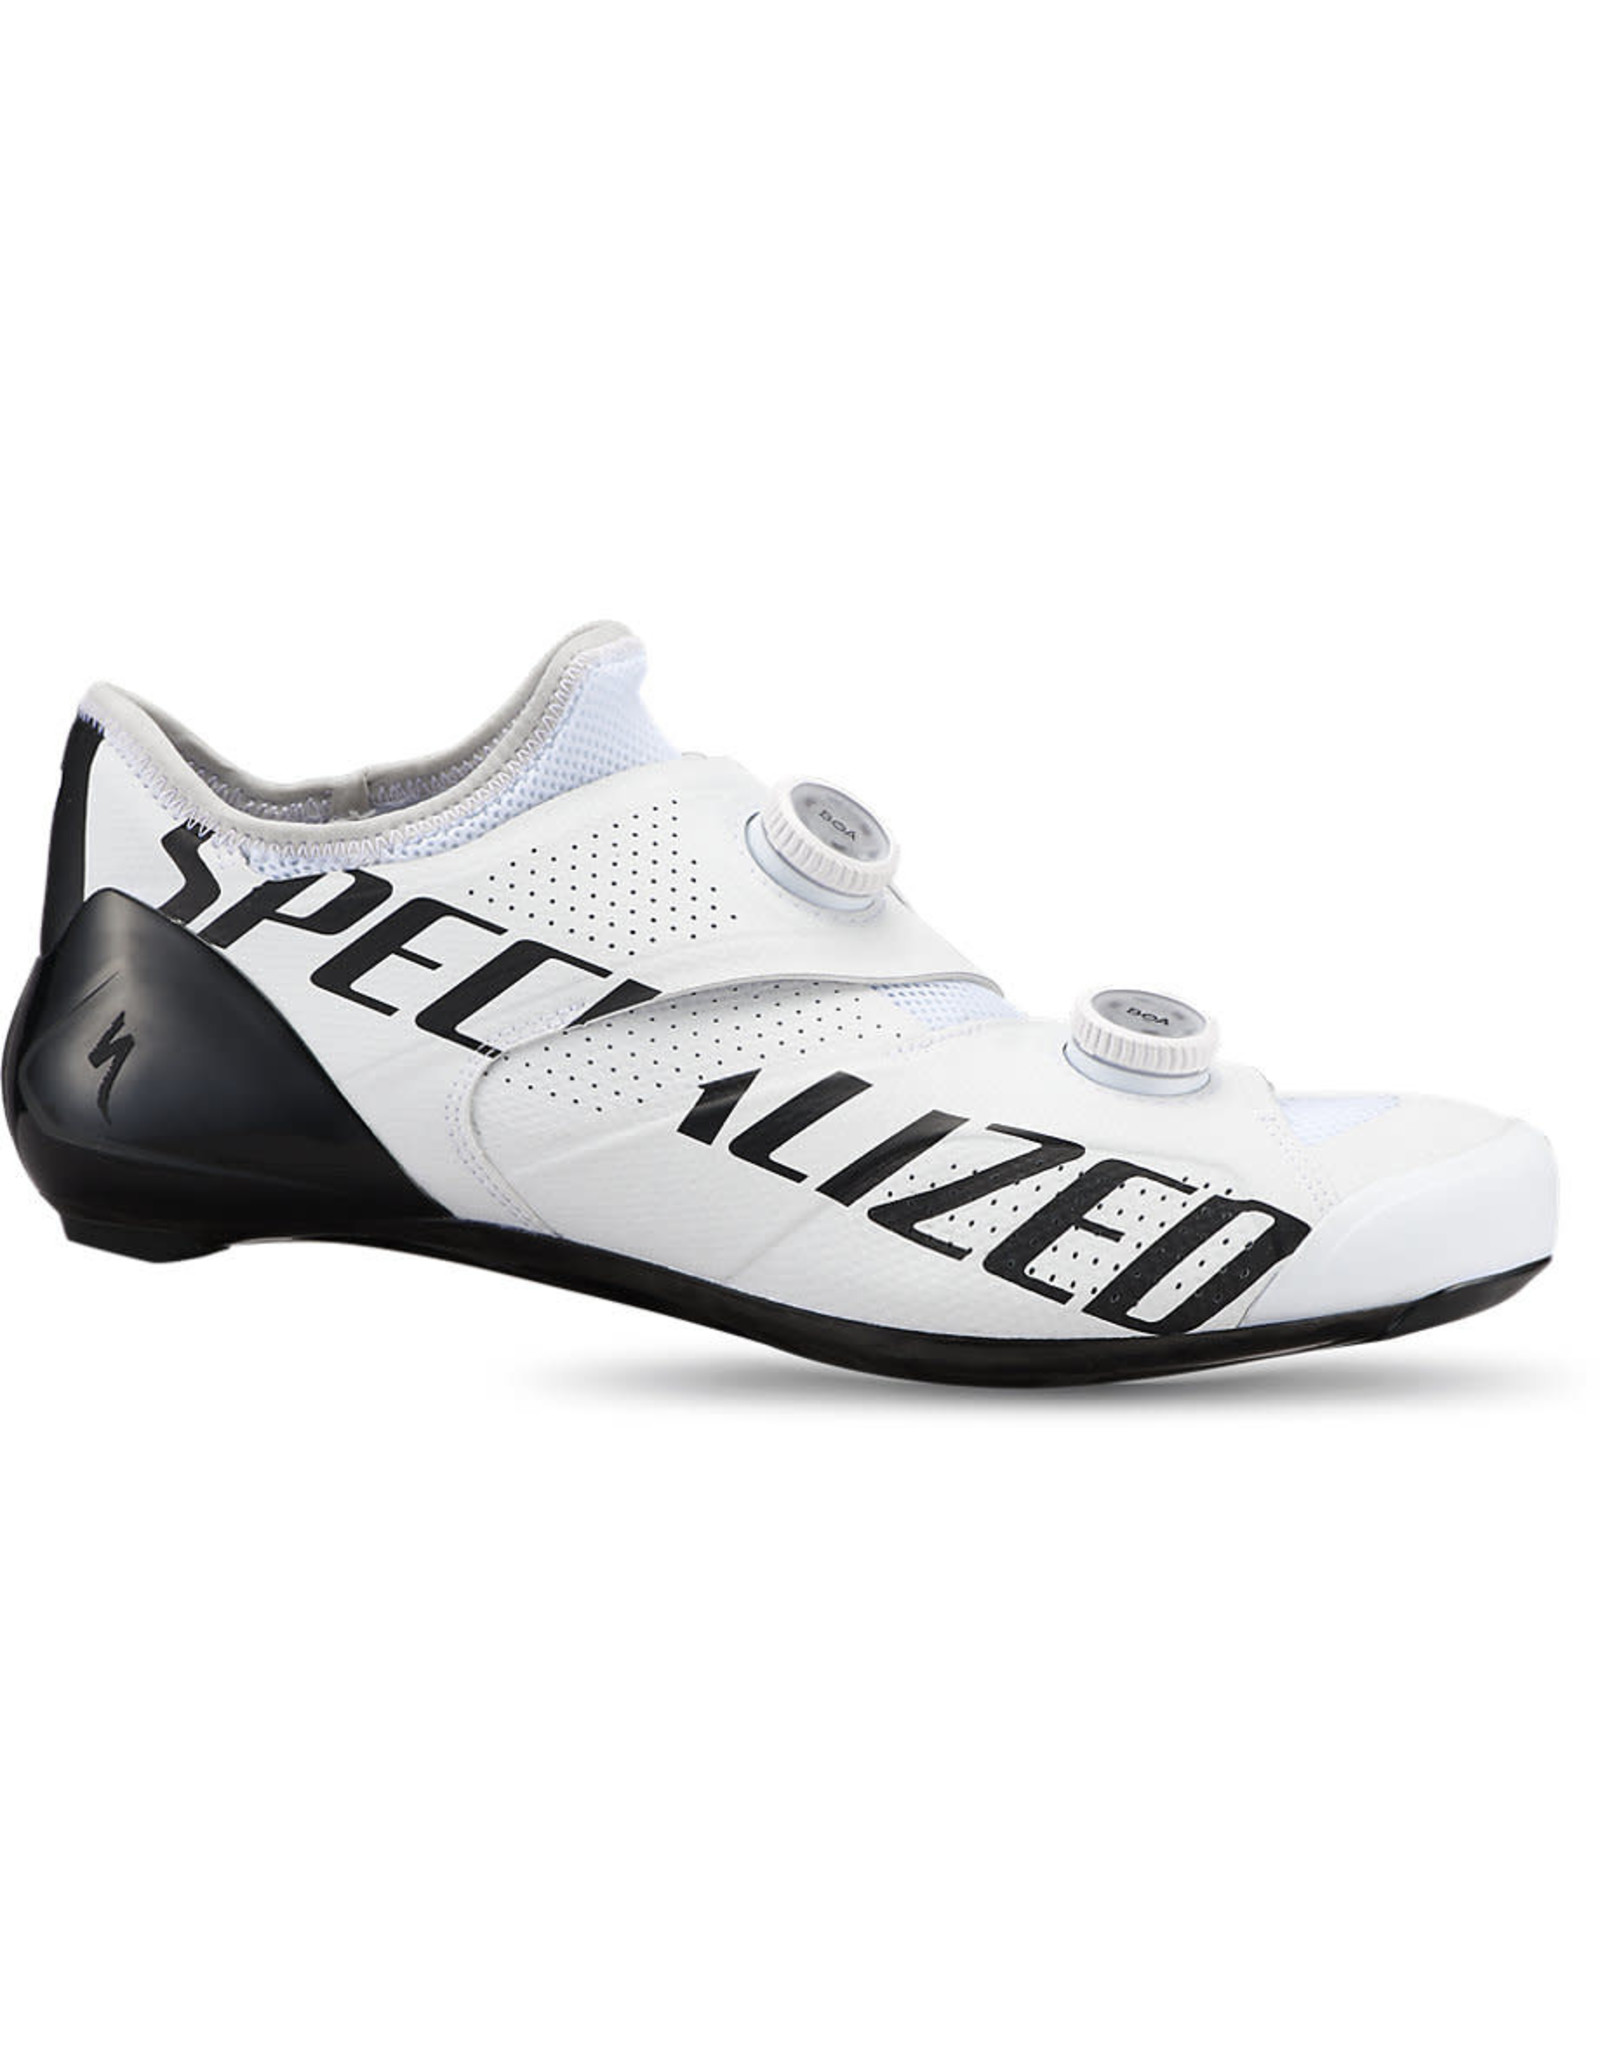 Specialized Specialized S-Works Ares Road Shoe